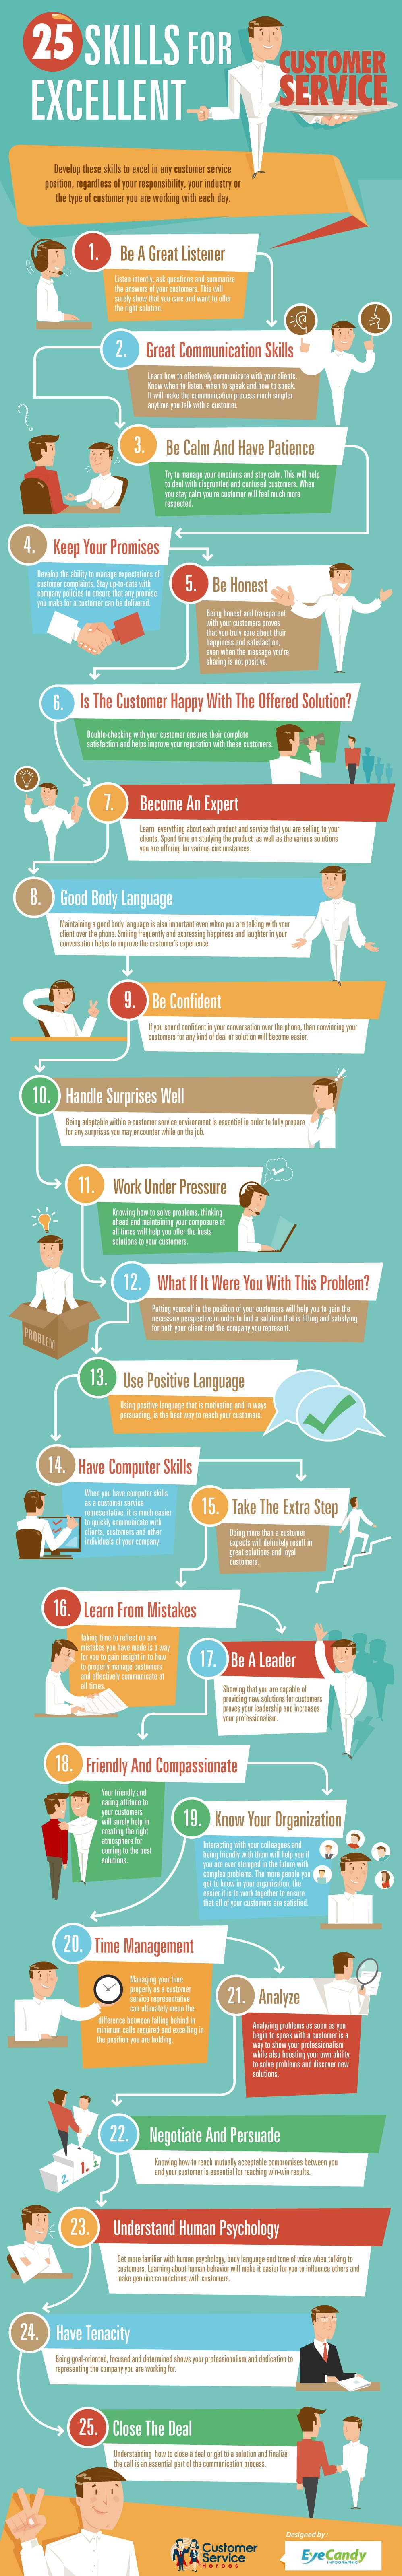 customer-service-skills-needed-infographic